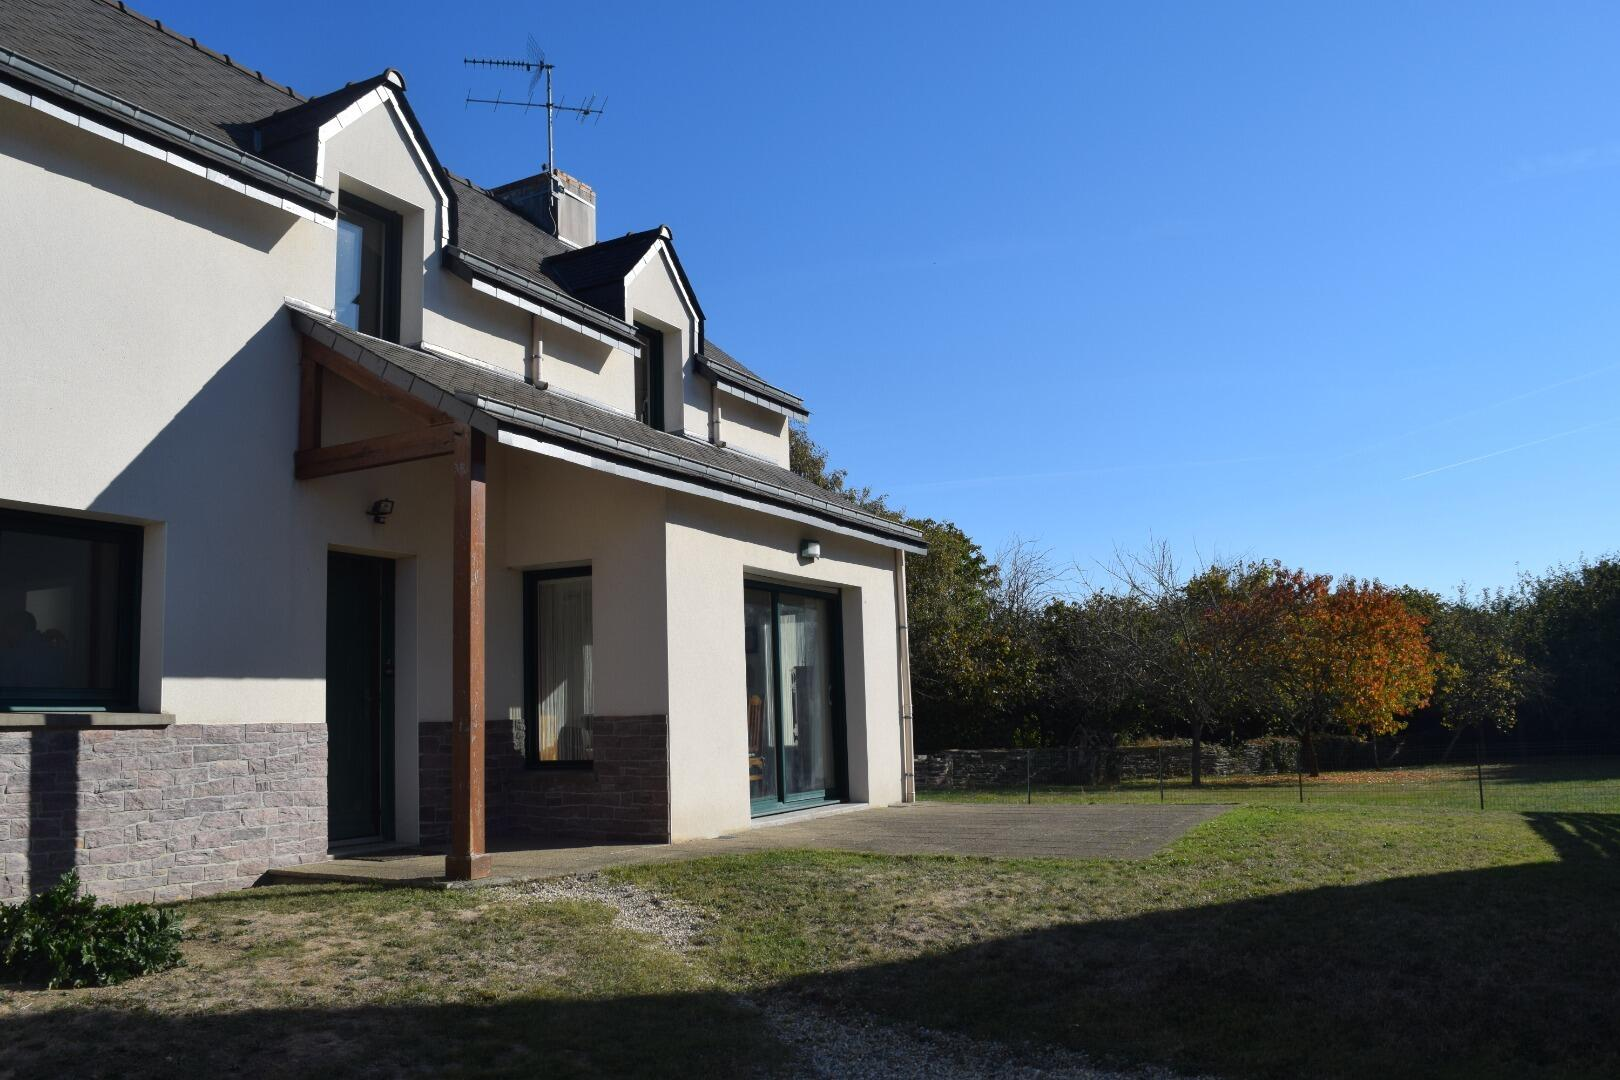 Cjb Immobilier Agence Immobiliere Chateaugiron Ouestfrance Immo